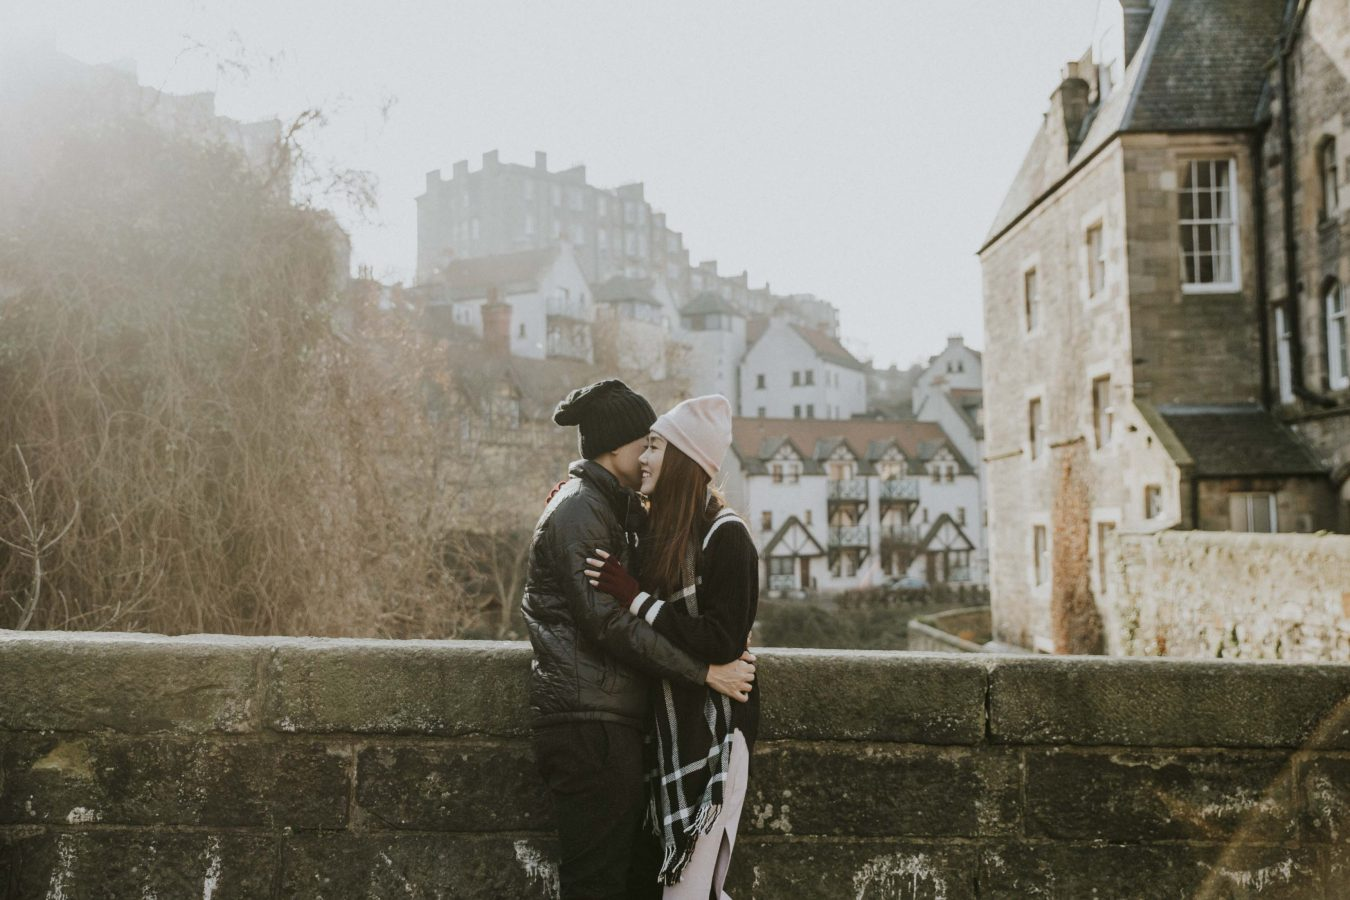 Edinburgh Honeymoon Couple Photo Session | Casual Engagement Photoshoot | Edinburgh Holiday Photos by Ceranna Photography